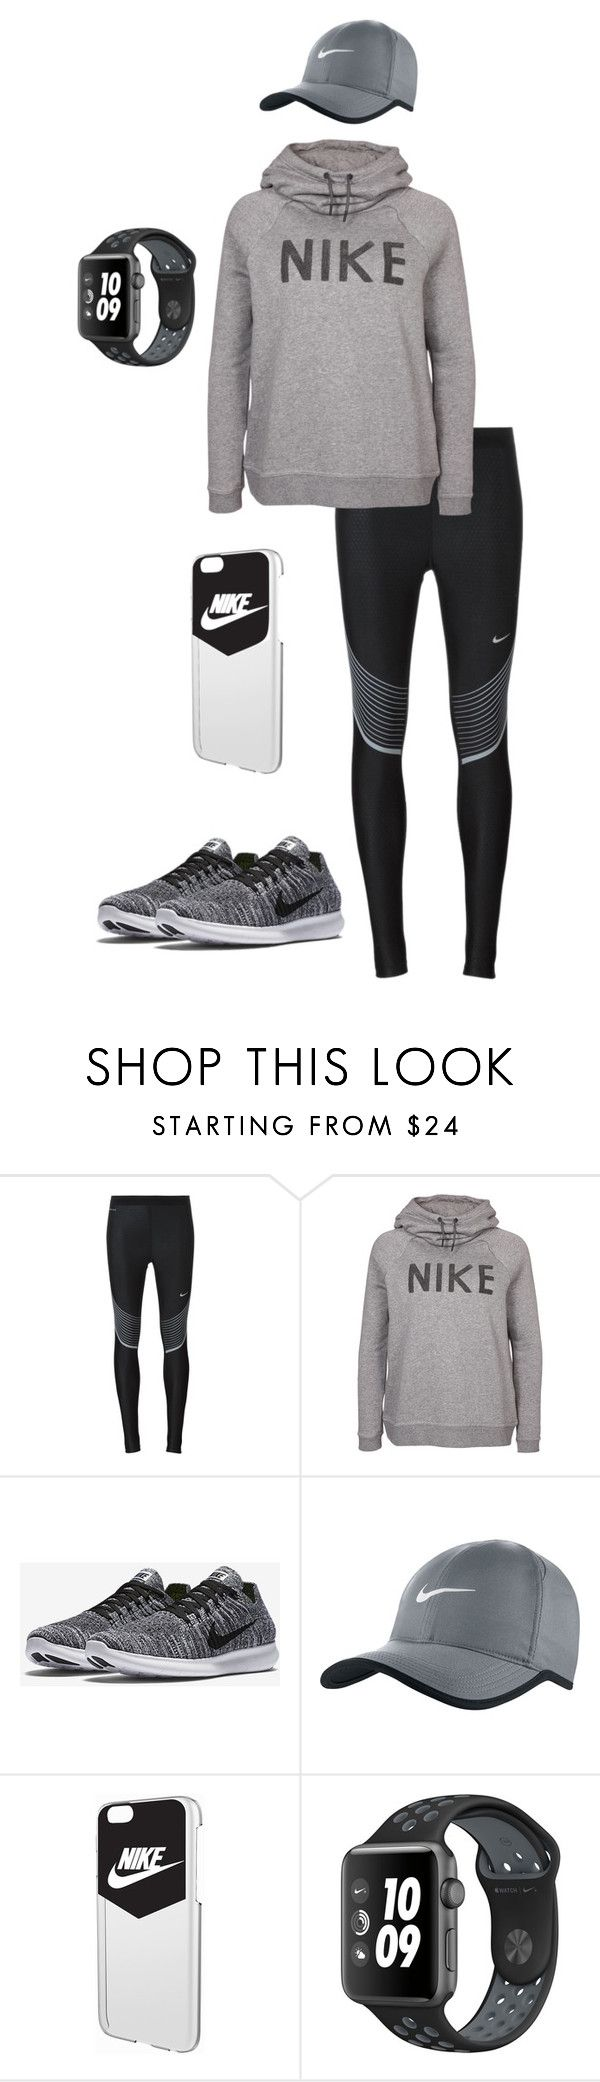 nike #2 by zinnt on Polyvore featuring NIKE